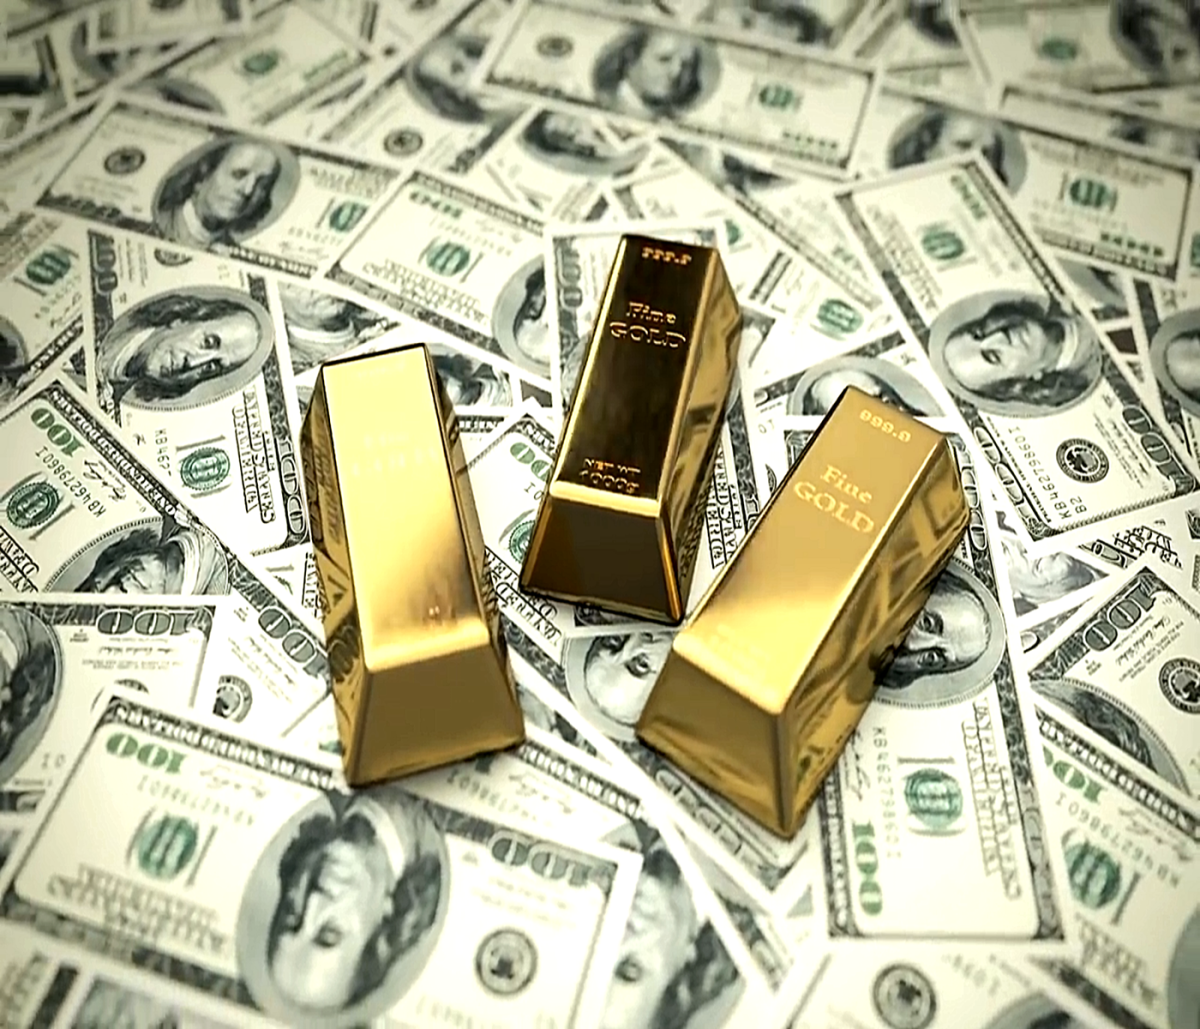 Gold bars and crisp dollar bills to explain the Pros and Cons of the Gold Standard.